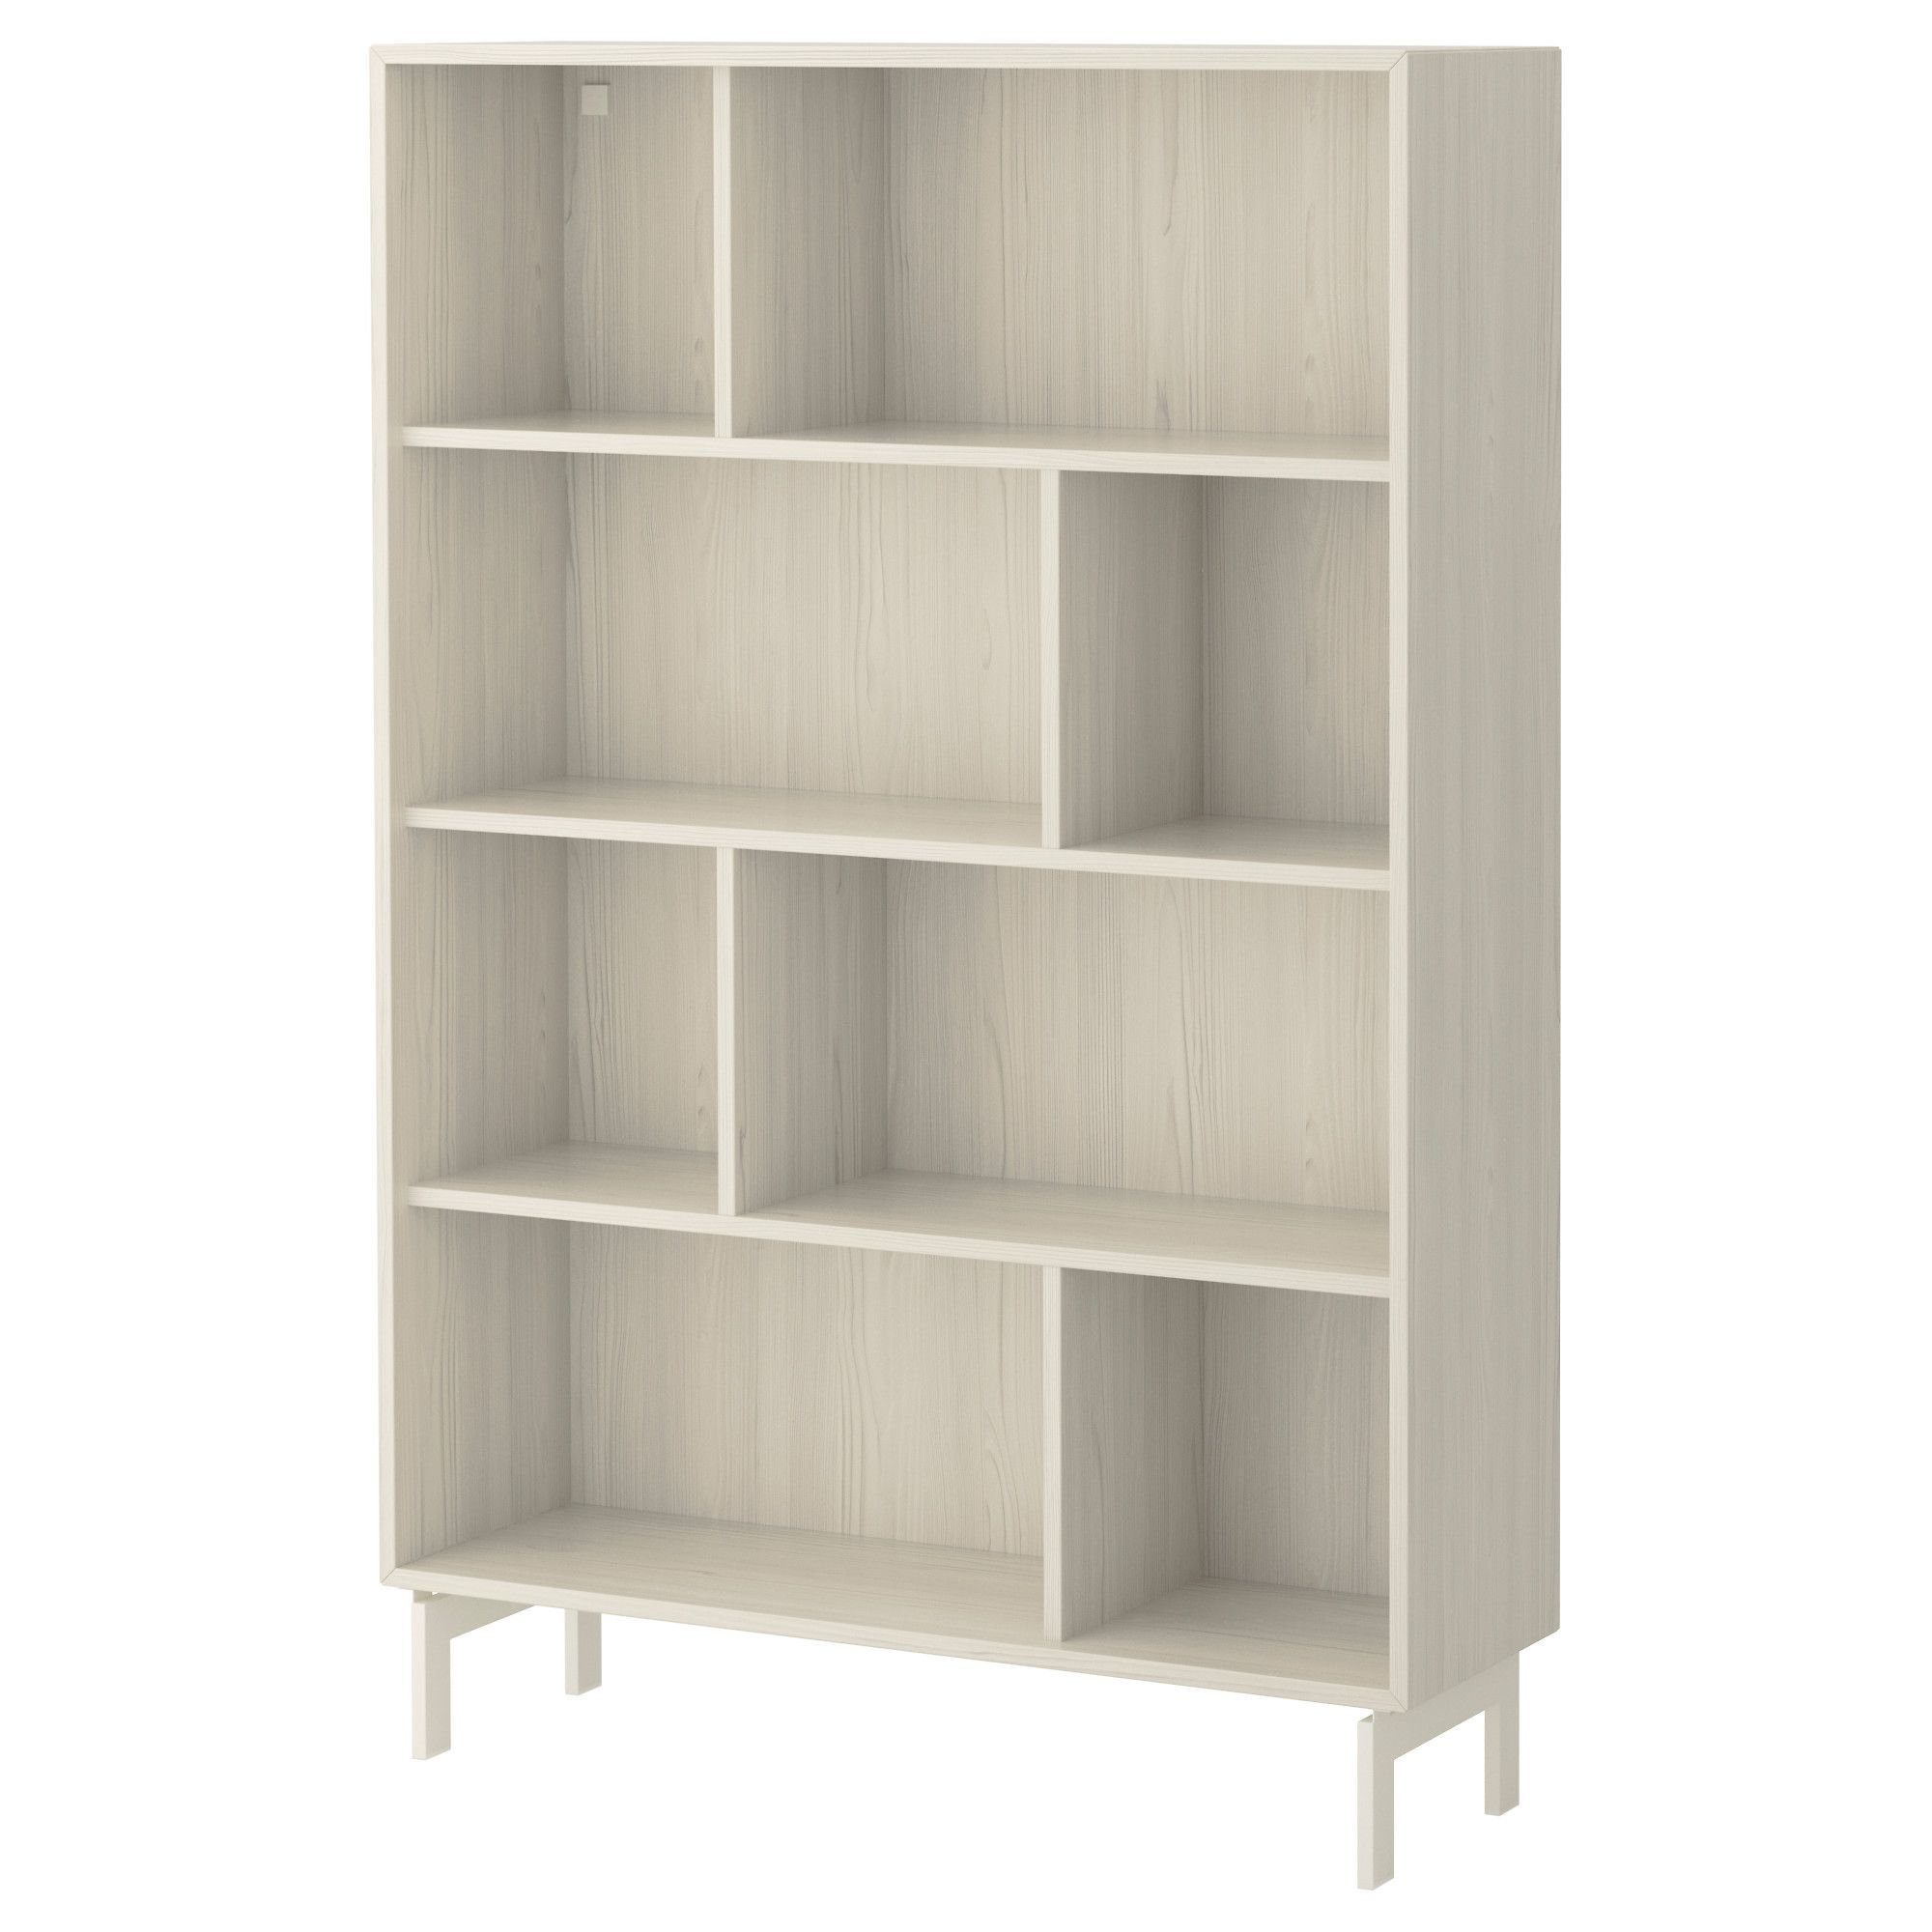 Ireland Shop For Furniture  Home Accessories  Ikea Shelving Unit Ikea Shelves